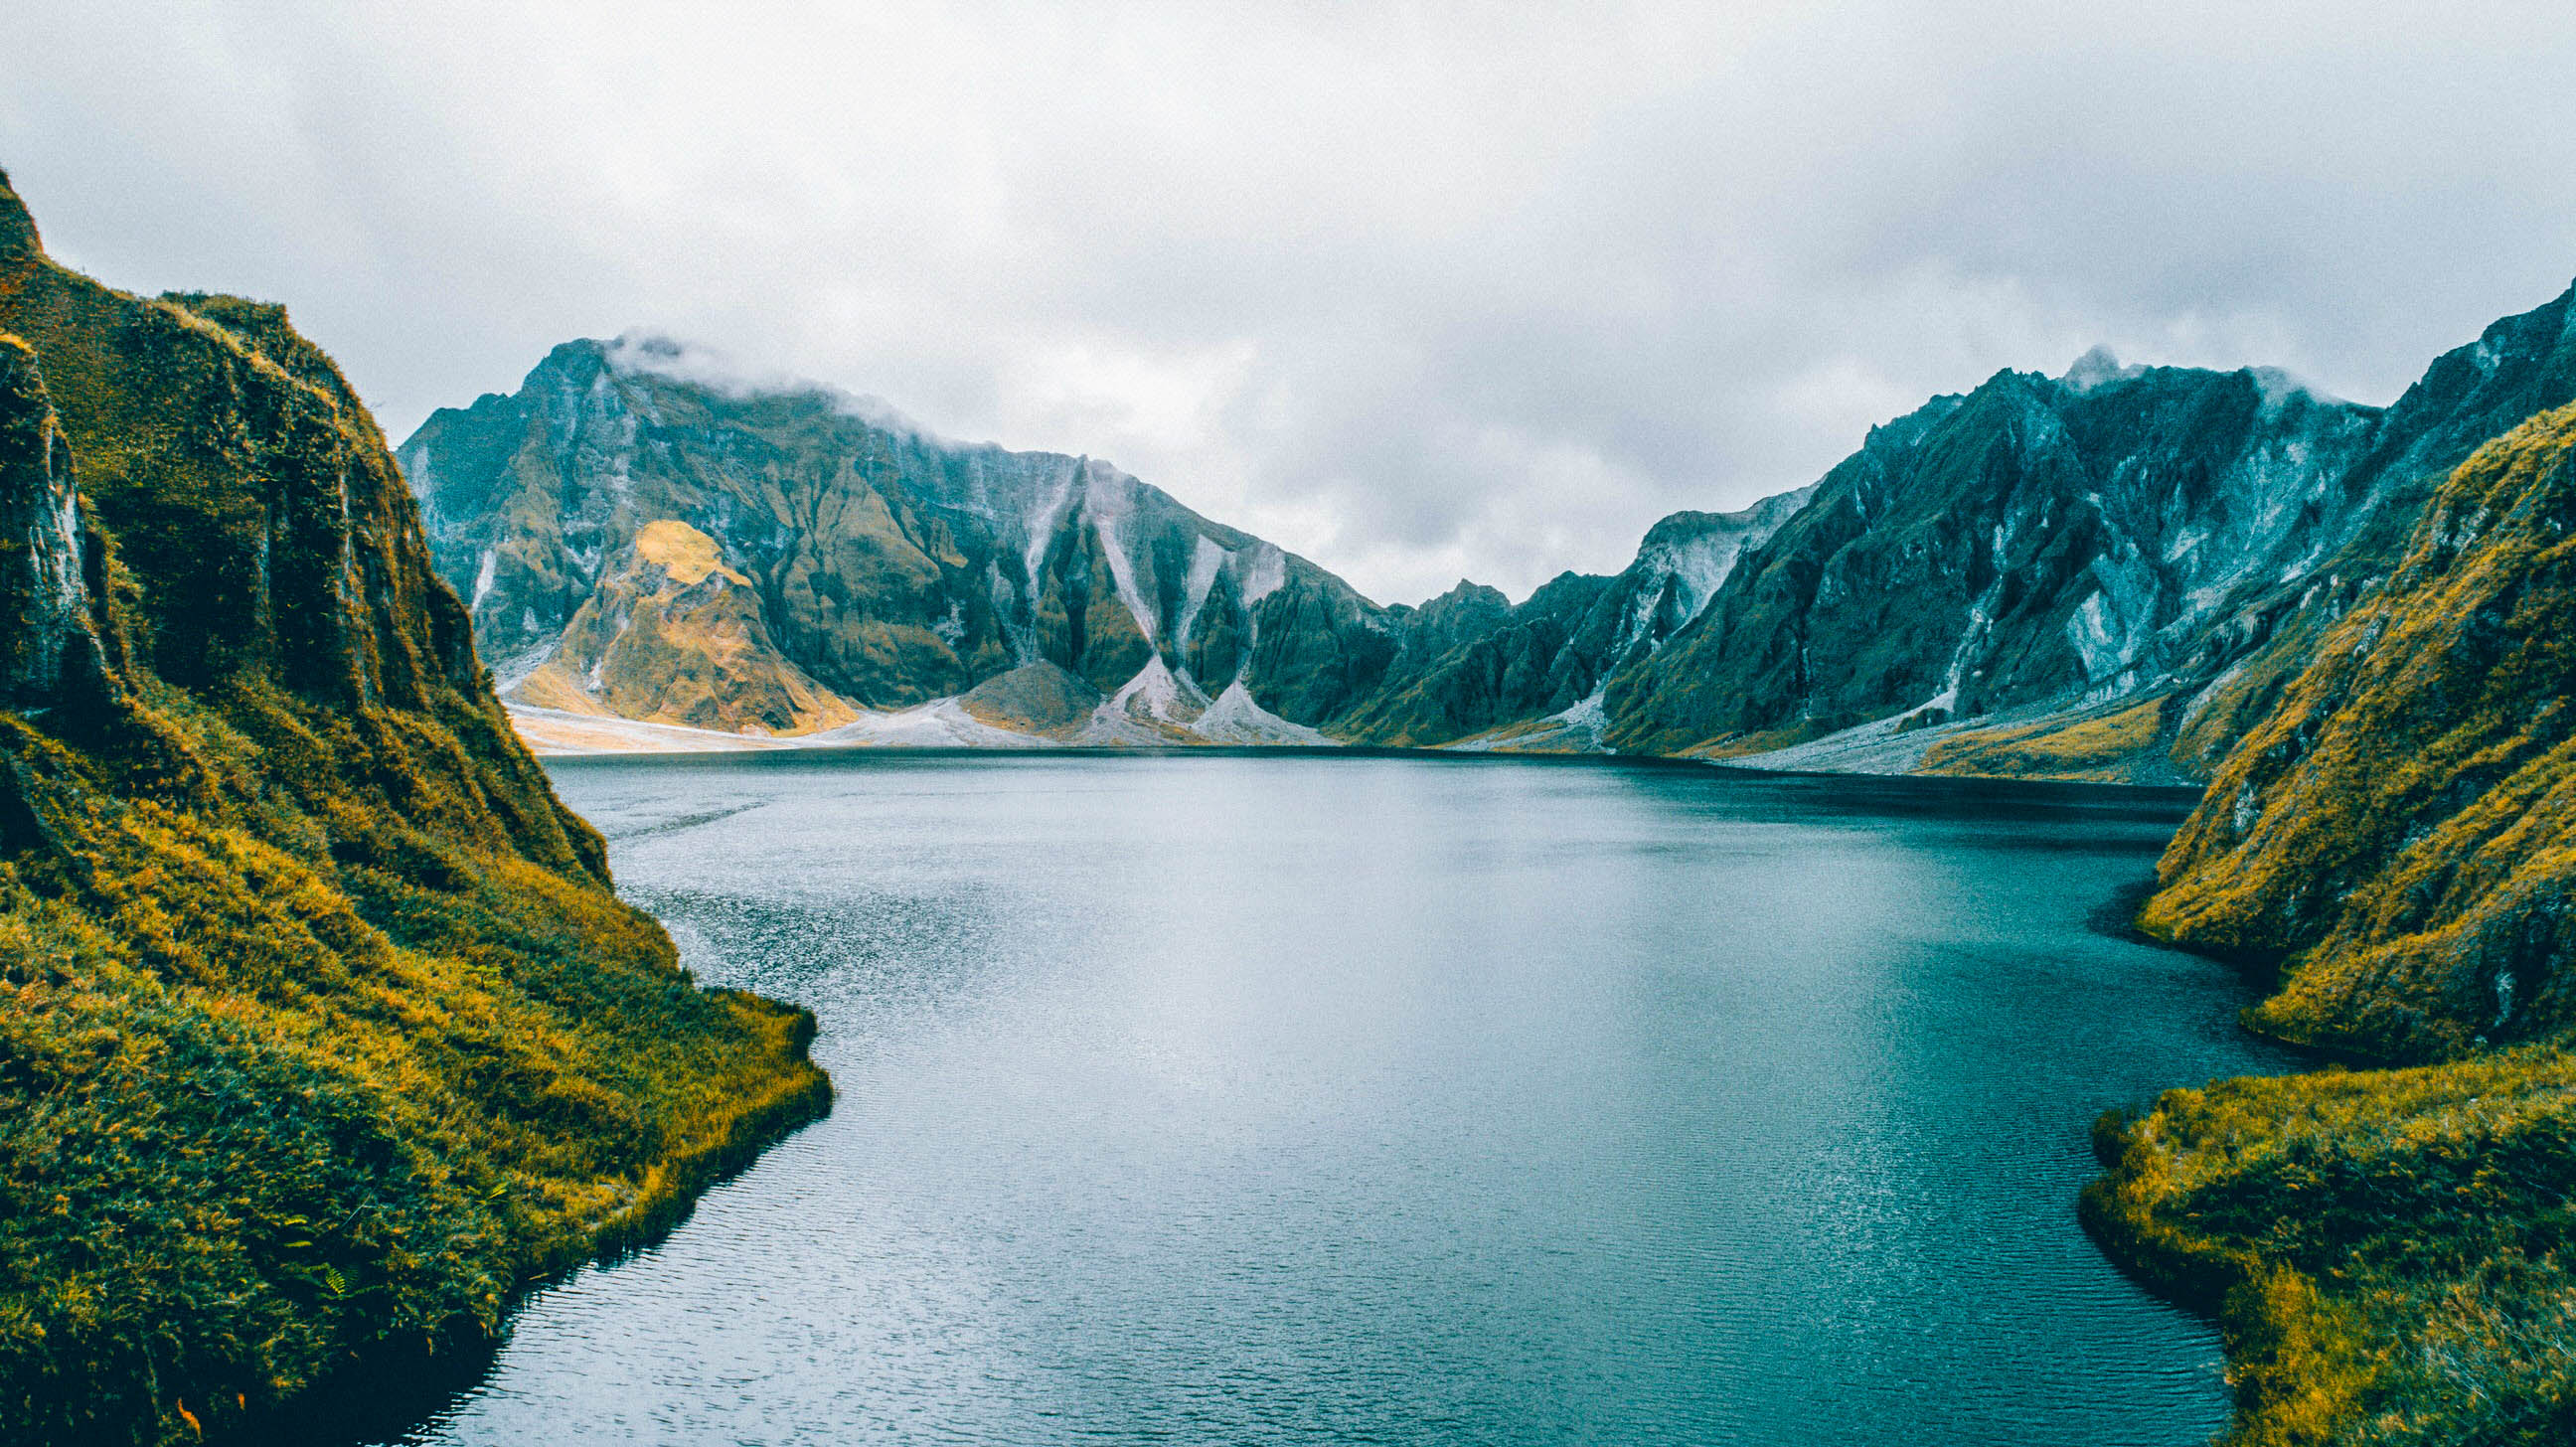 Lake Pinatubo surrounded by the summit walls of Mount Pinatubo, Philippines